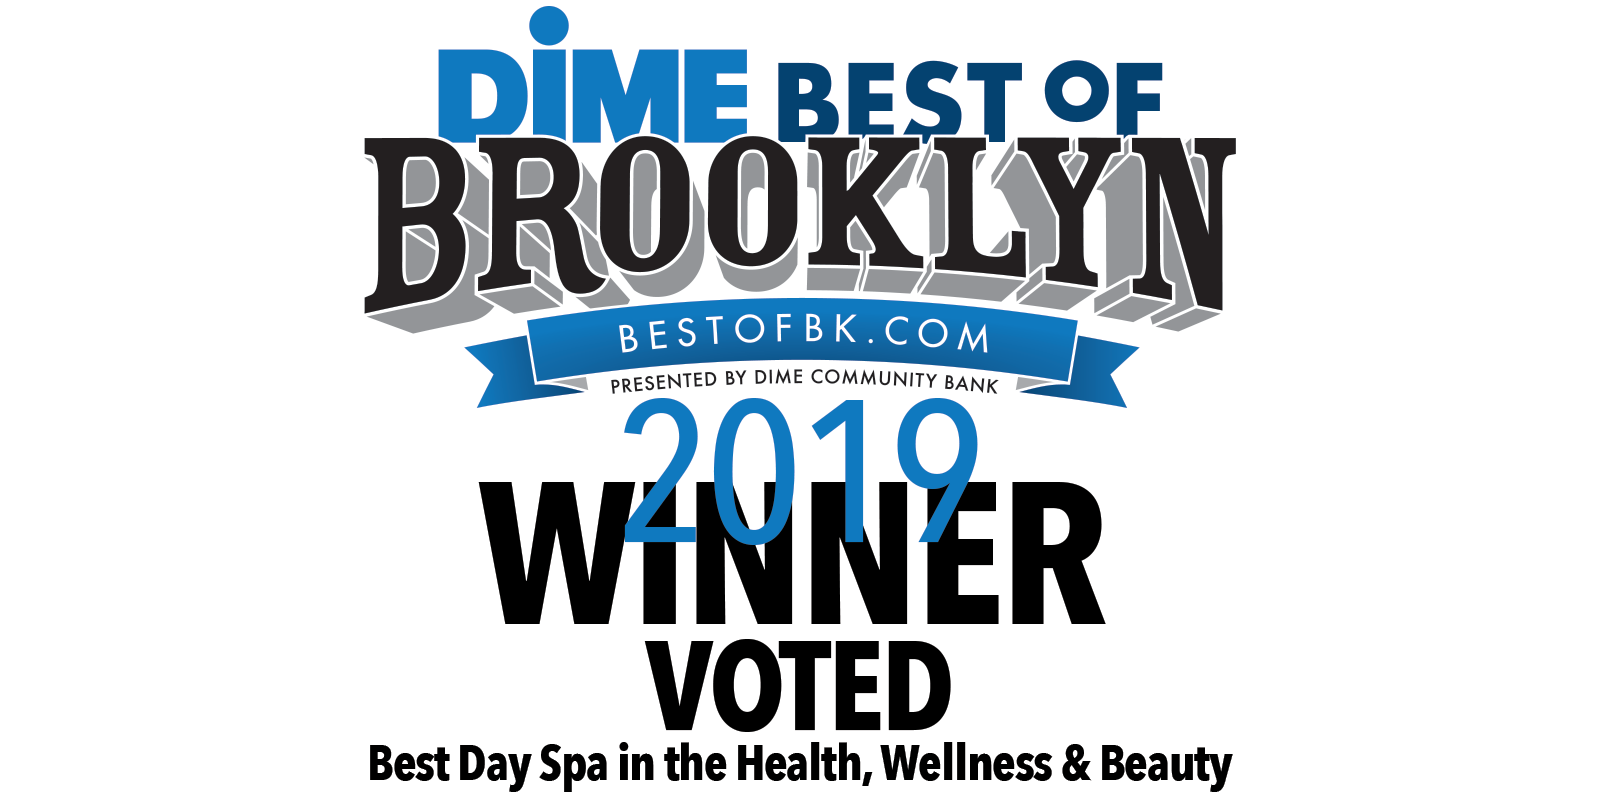 The Green Spa & Wellness Center - Top Rated Local Day Spa